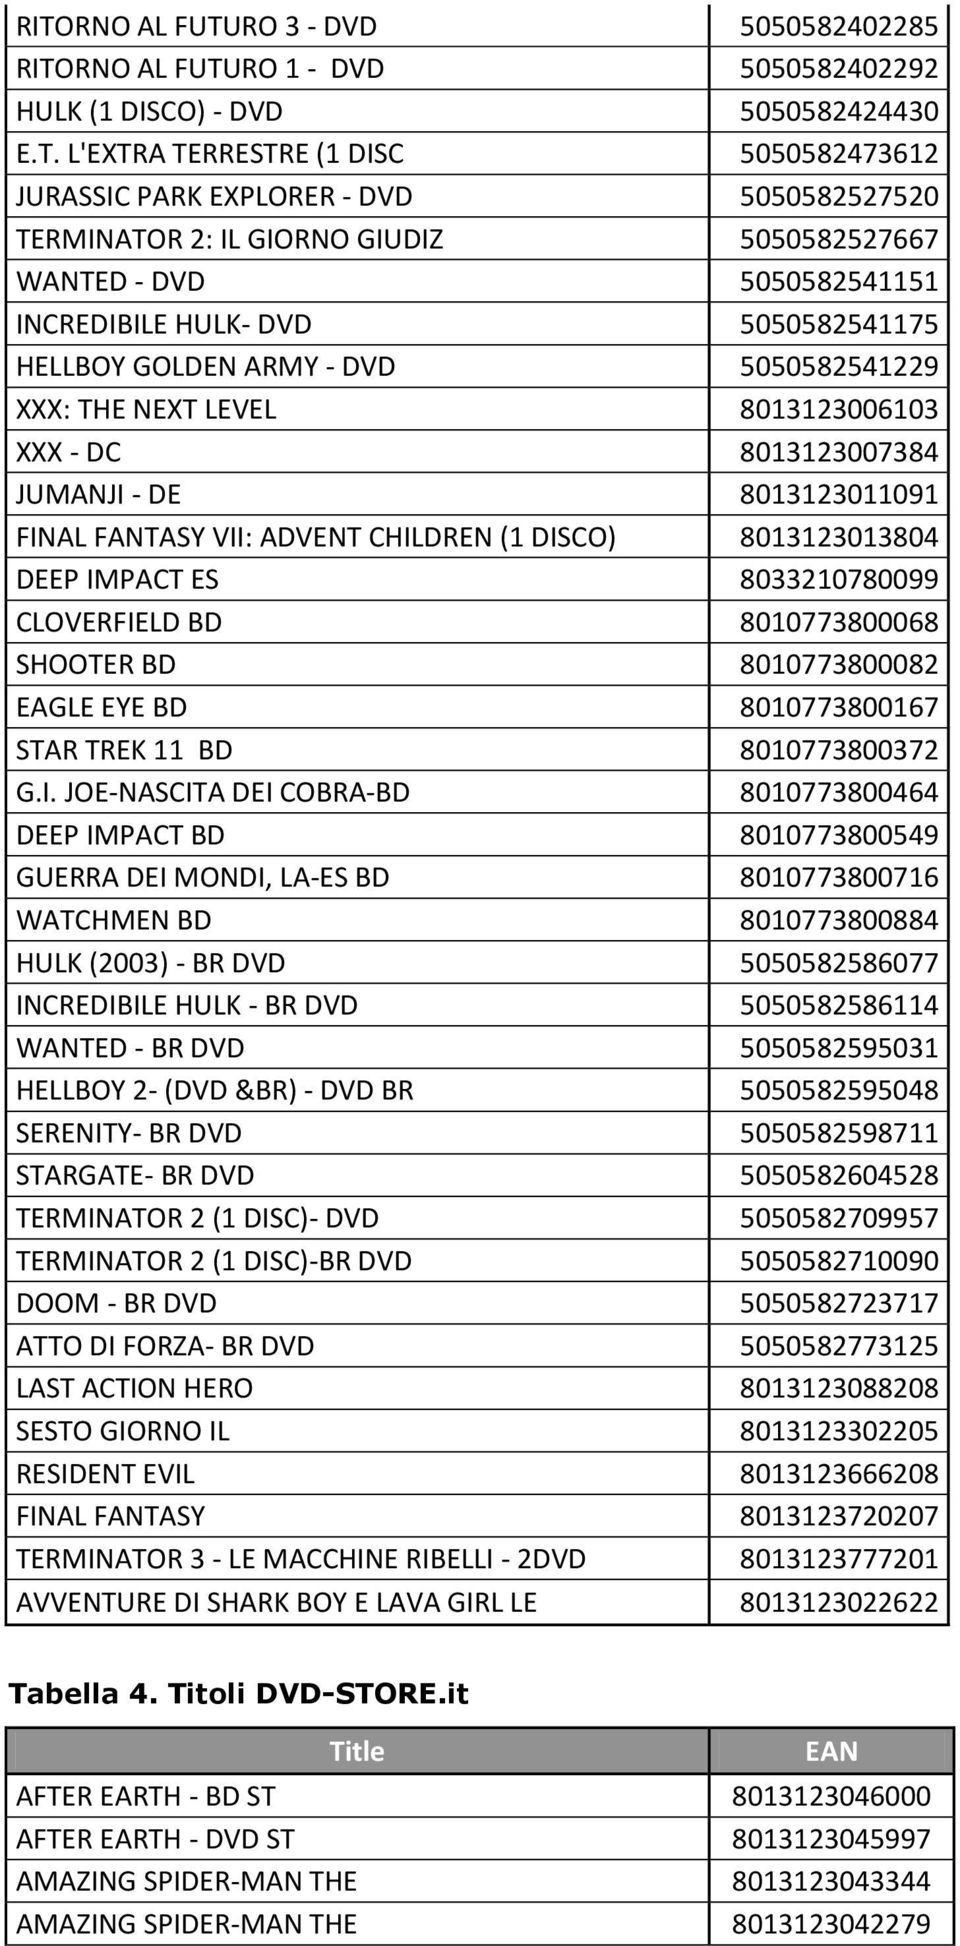 - DC 8013123007384 JUMANJI - DE 8013123011091 FINAL FANTASY VII: ADVENT CHILDREN (1 DISCO) 8013123013804 DEEP IMPACT ES 8033210780099 CLOVERFIELD BD 8010773800068 SHOOTER BD 8010773800082 EAGLE EYE